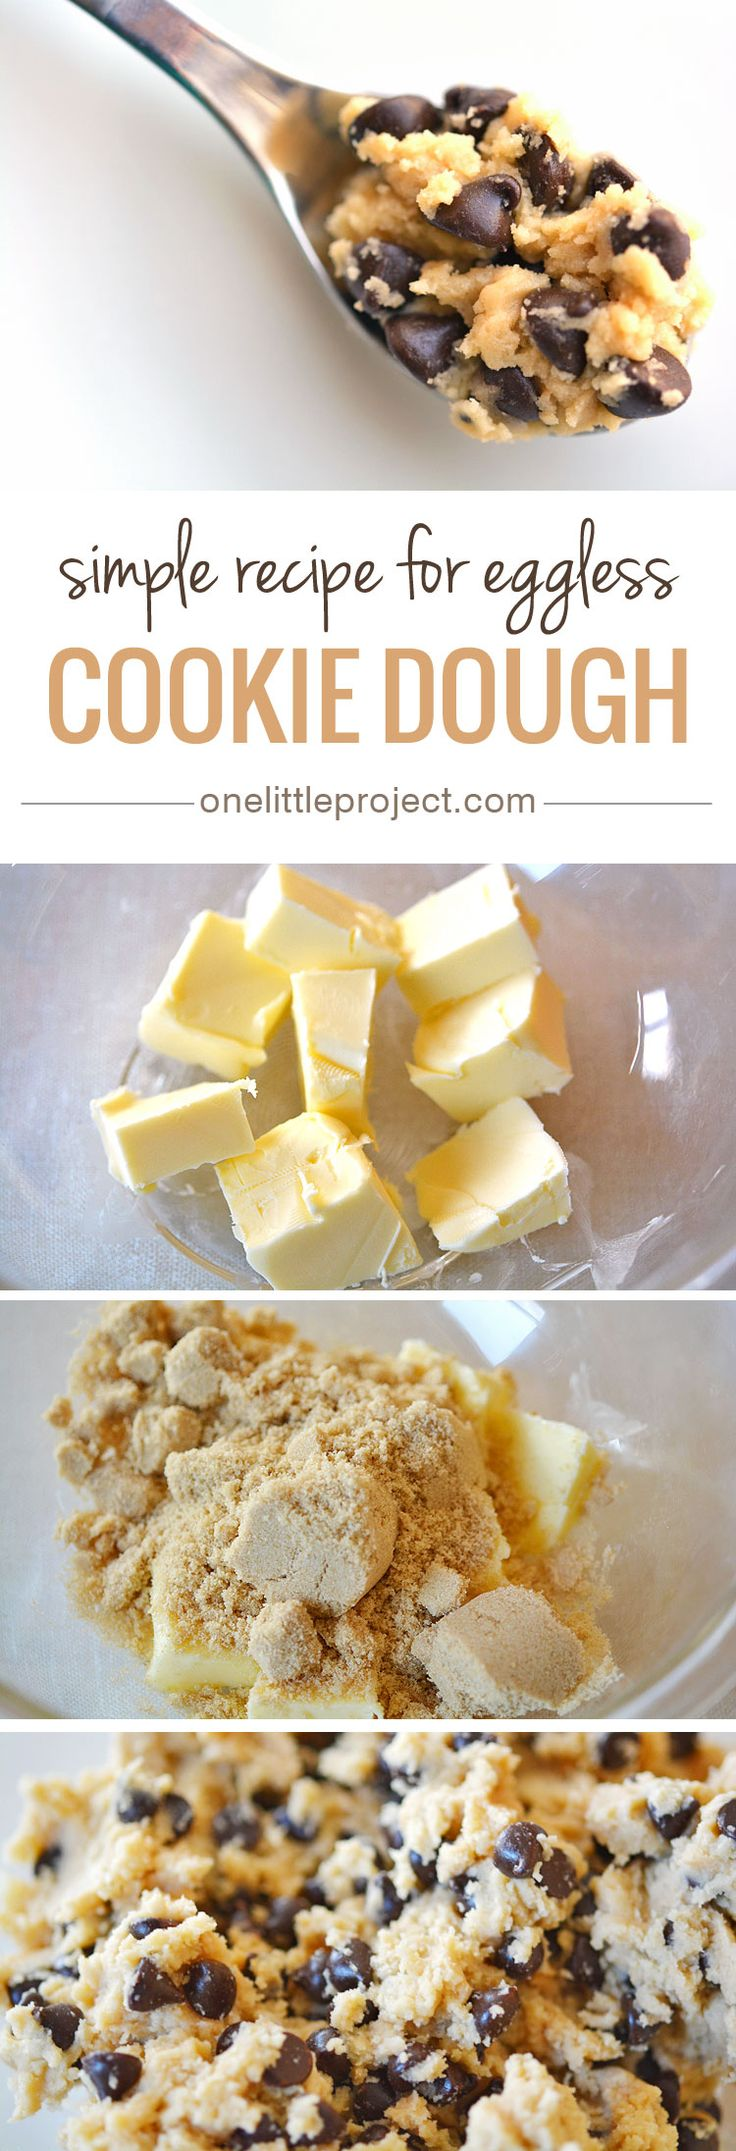 Eggless Cookie Dough - This recipe for edible, safe to eat cookie dough is AMAZING! I could have eaten the whole bowl.